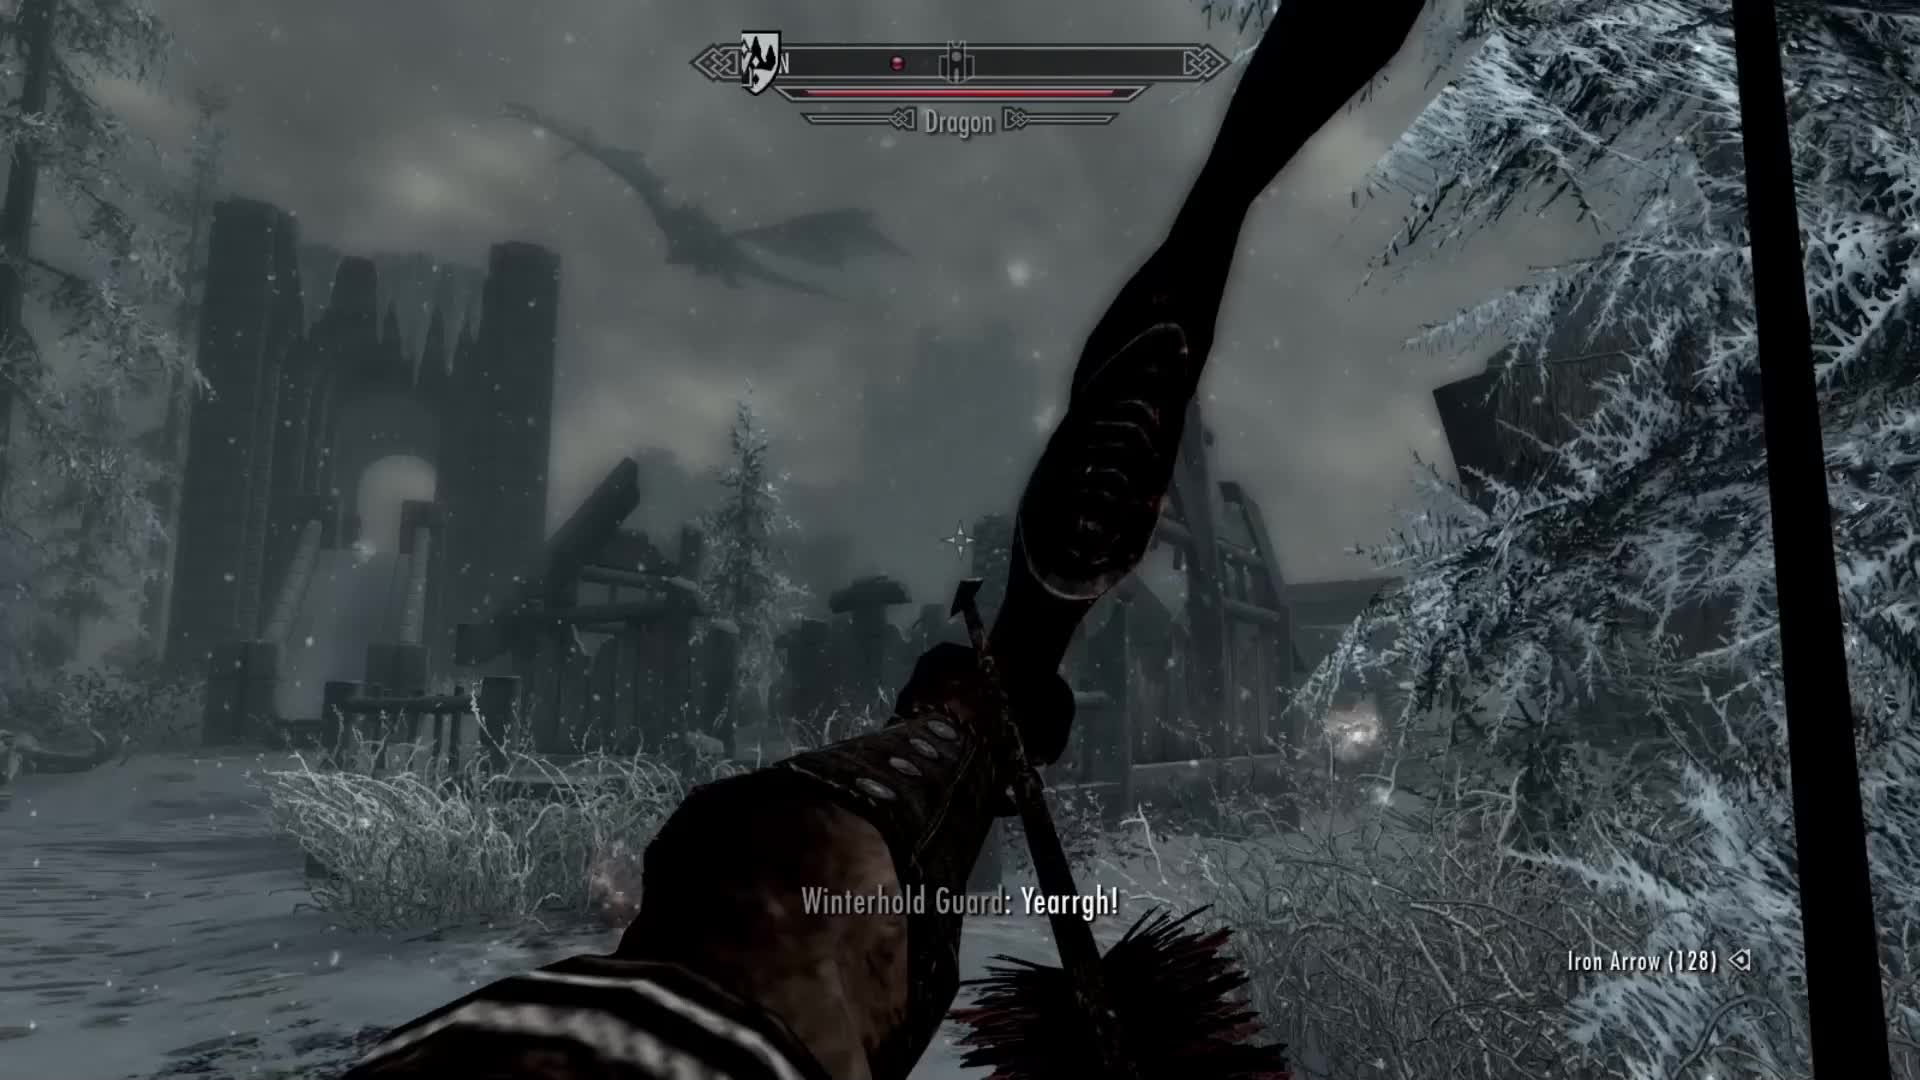 Skyrim on Switch GIFs